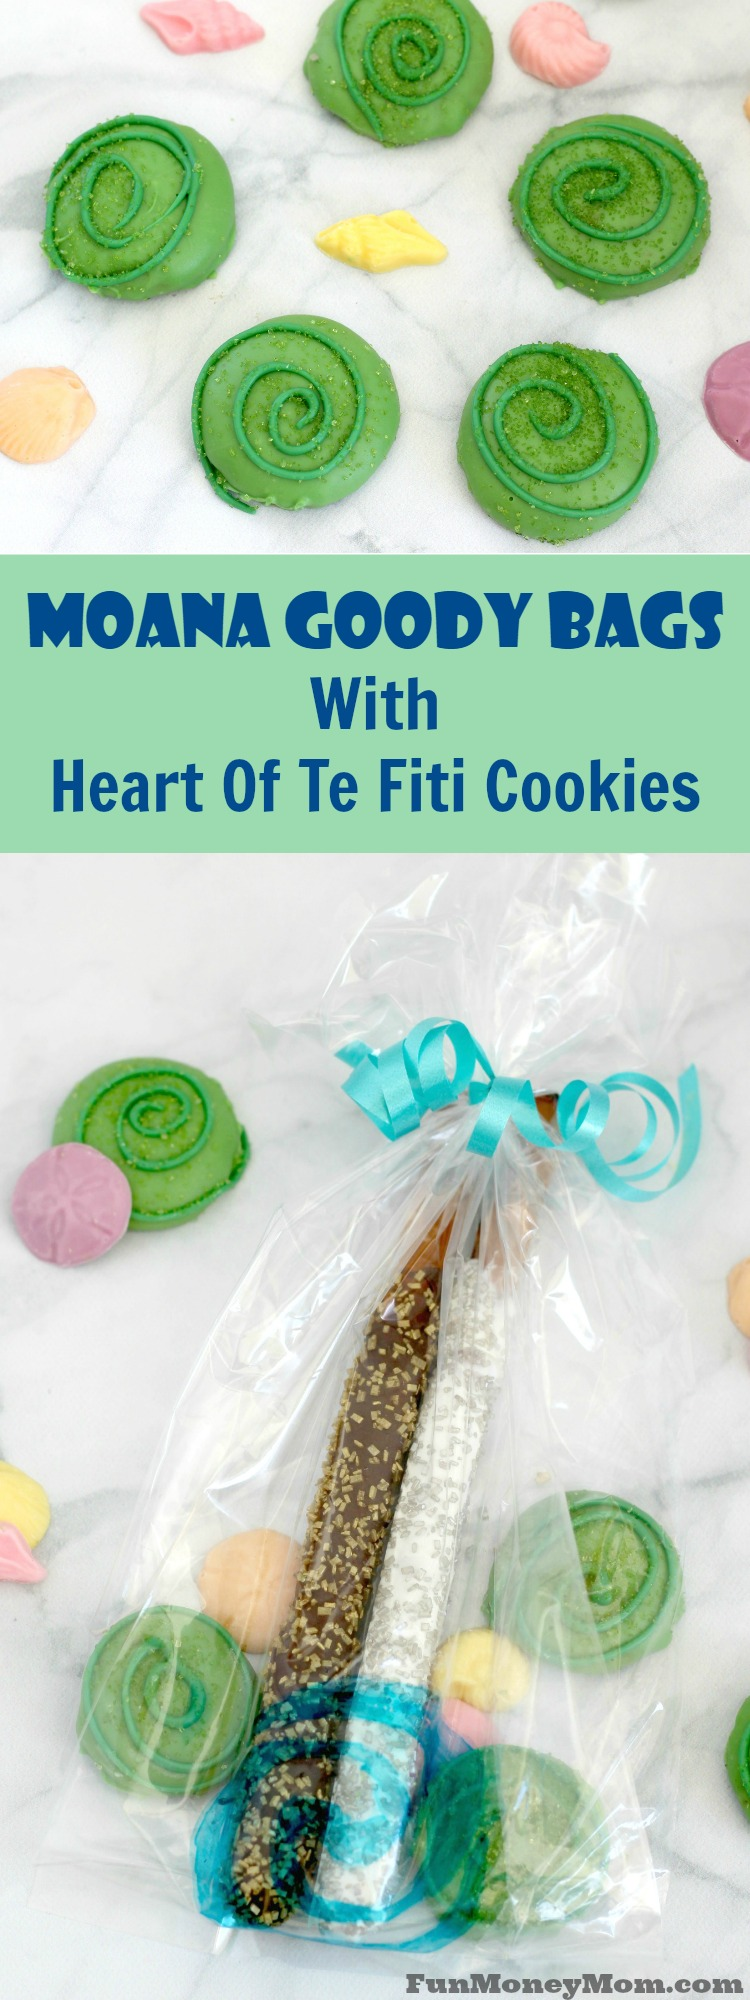 "These Moana goody bags are perfect for your Moana party with Heart of Te Fiti cookies and ""shiny"" stuff for Tamatoa the crab!"